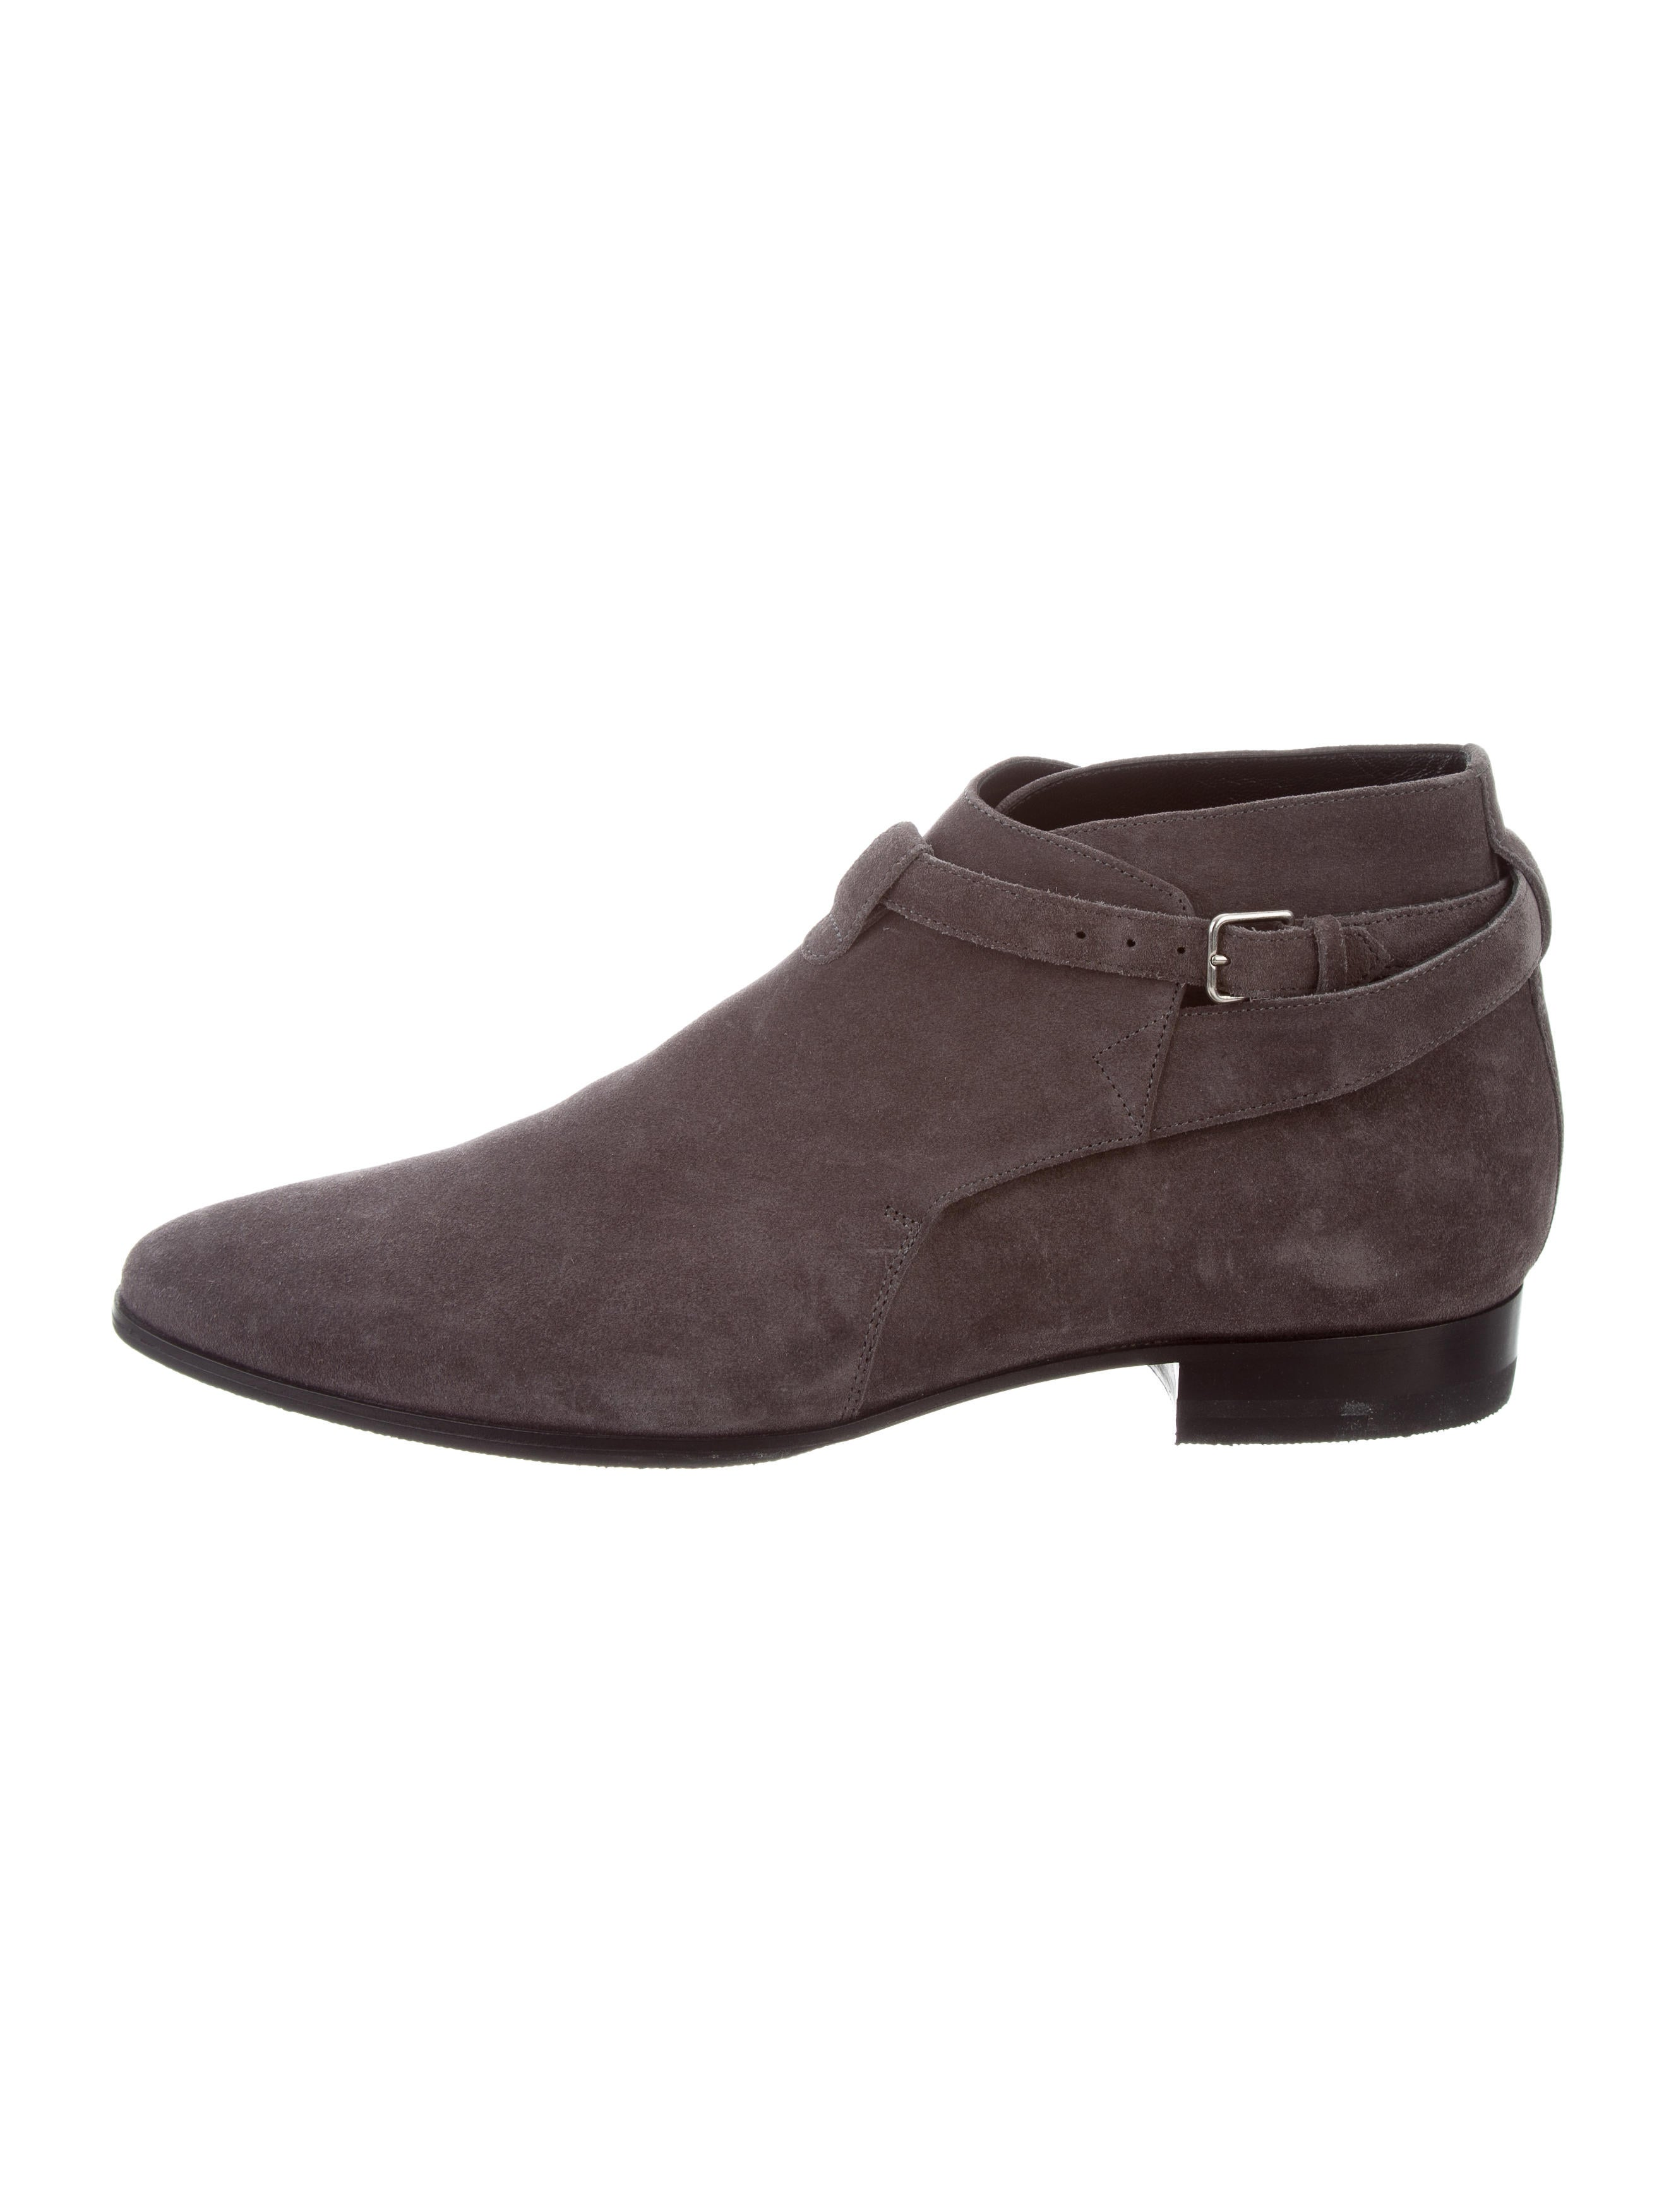 laurent suede ankle boots shoes snt35557 the